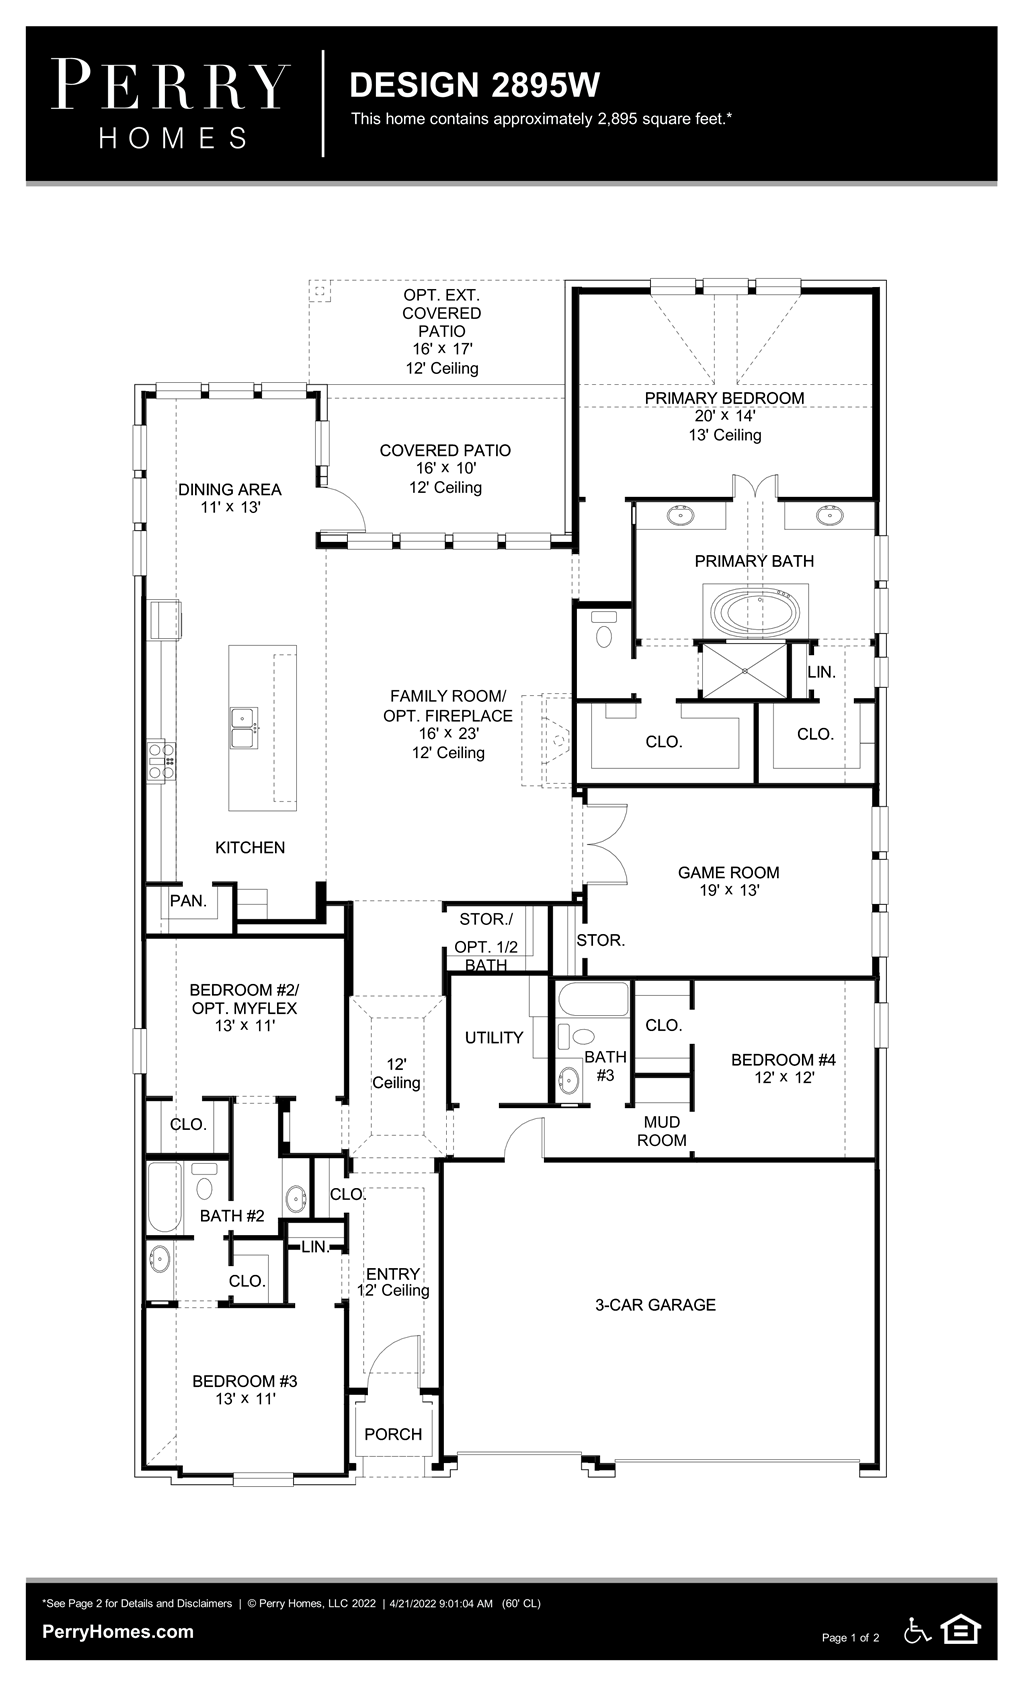 Floor Plan for 2895W